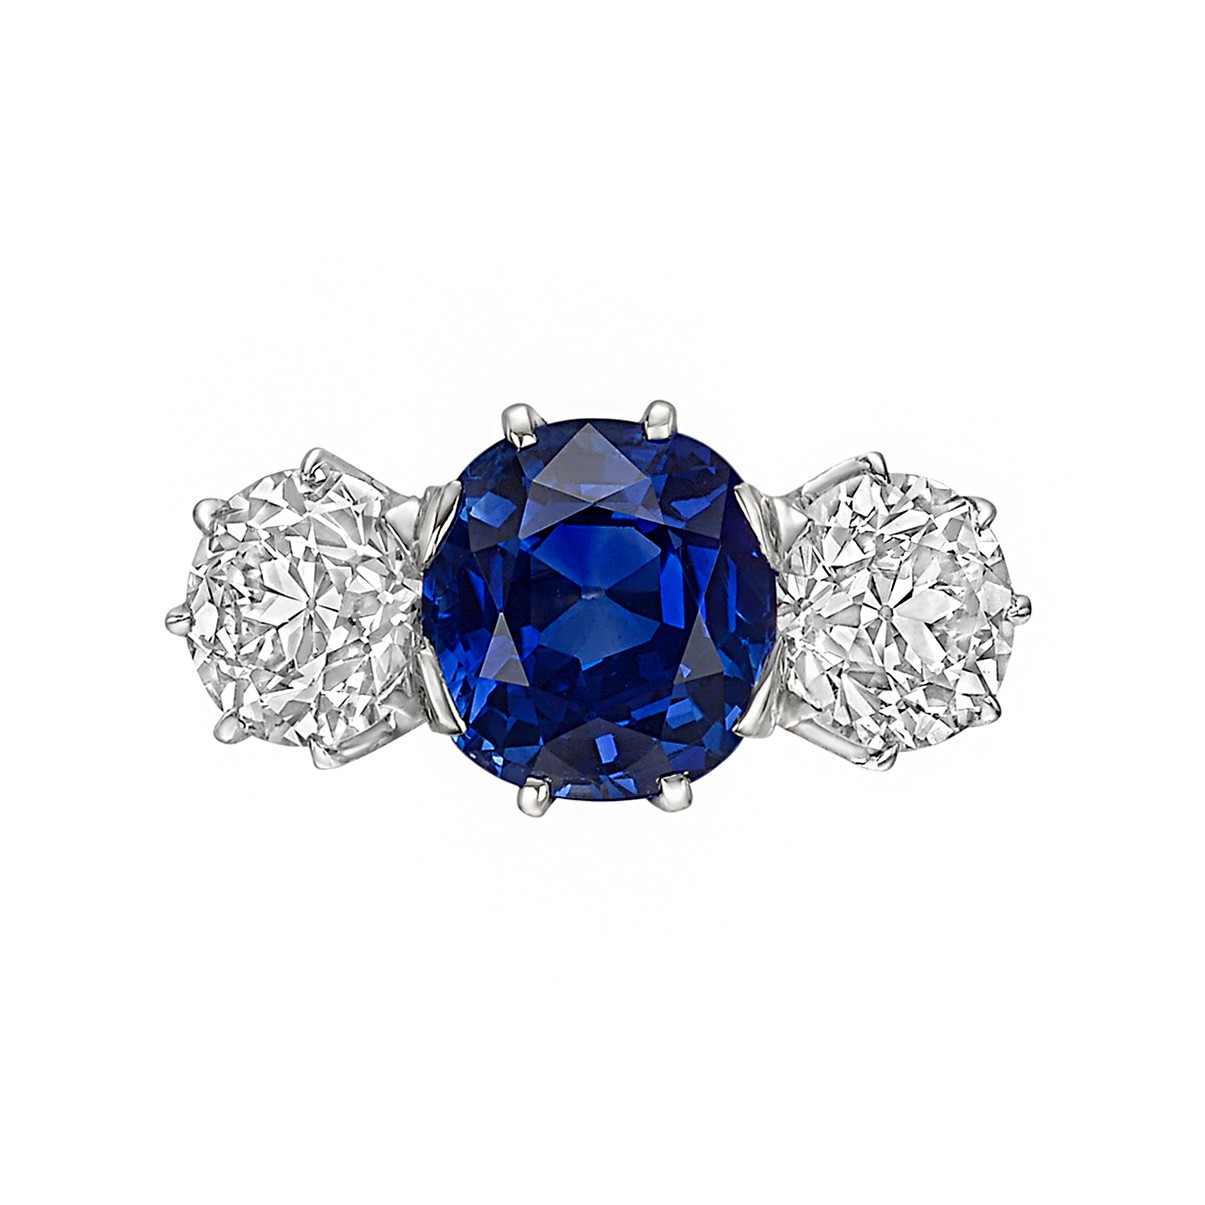 3.83ct Ceylon Sapphire & Diamond Three-Stone Ring